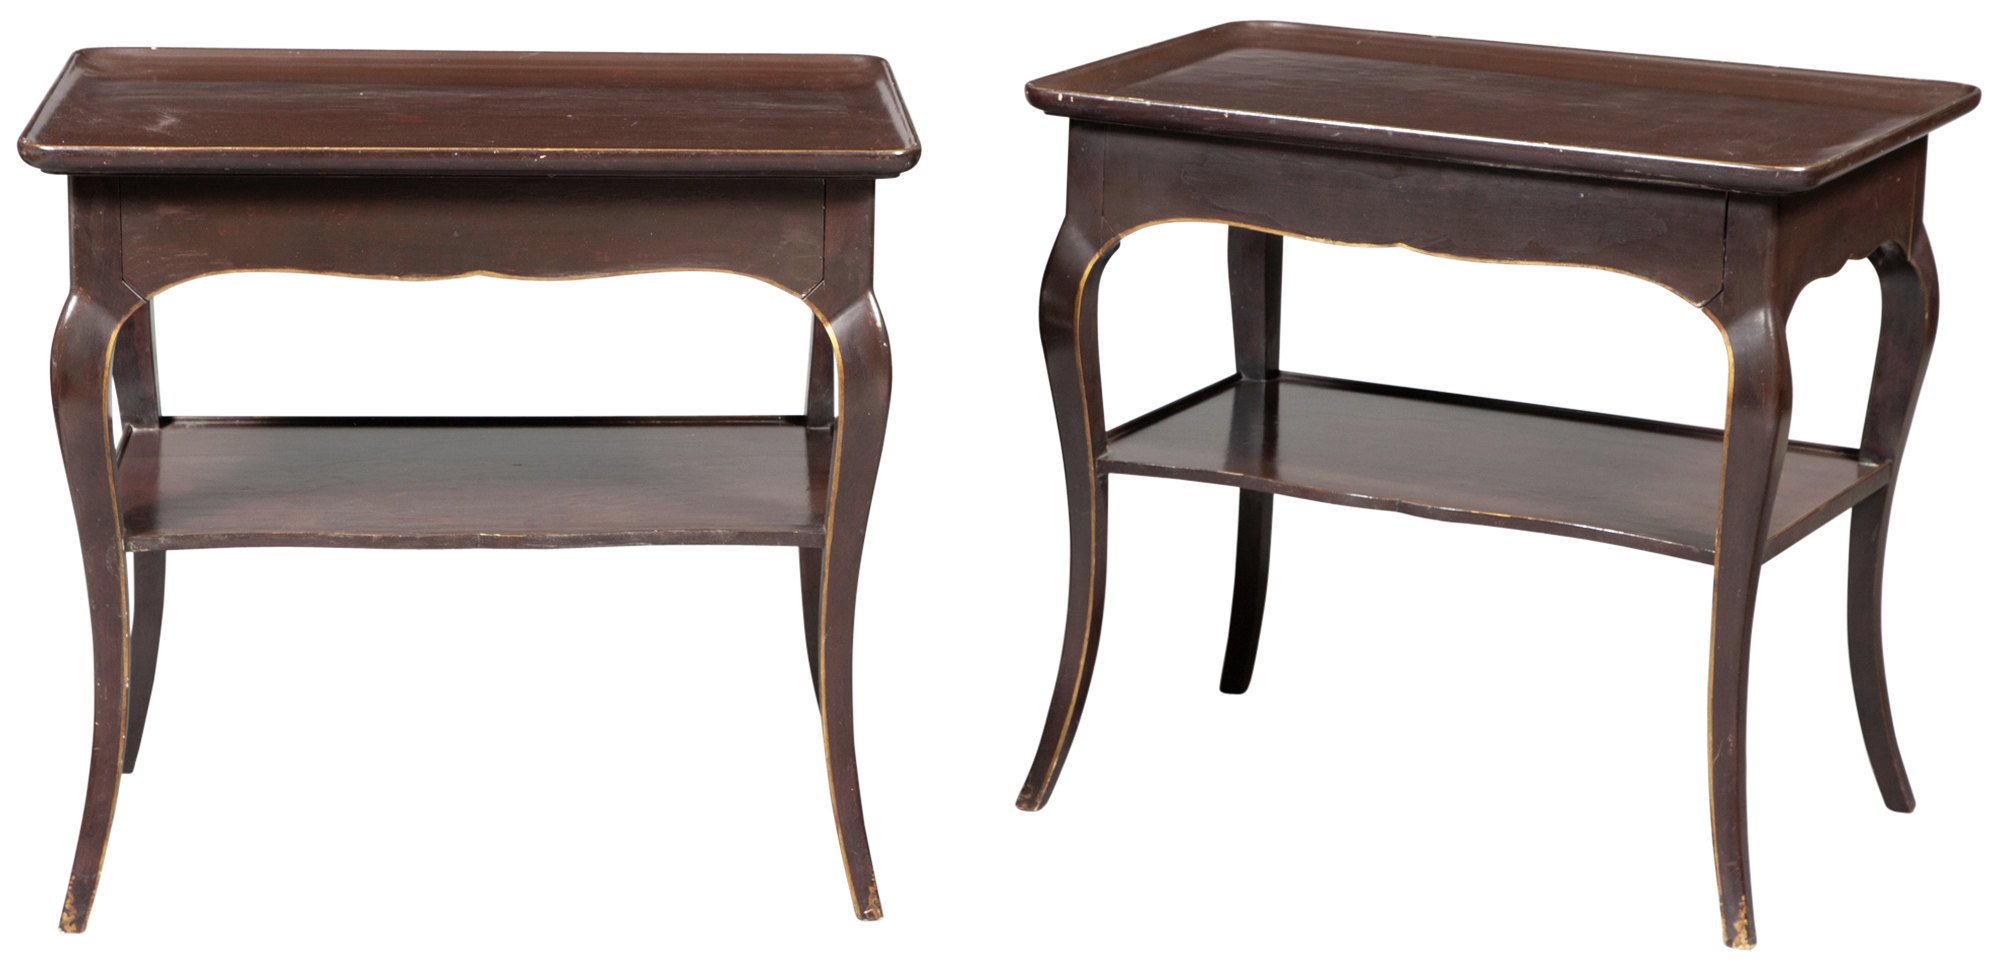 Lot image - Pair of Parish-Hadley Custom-Designed Brown-Painted and Glazed Wood Bedside Tables